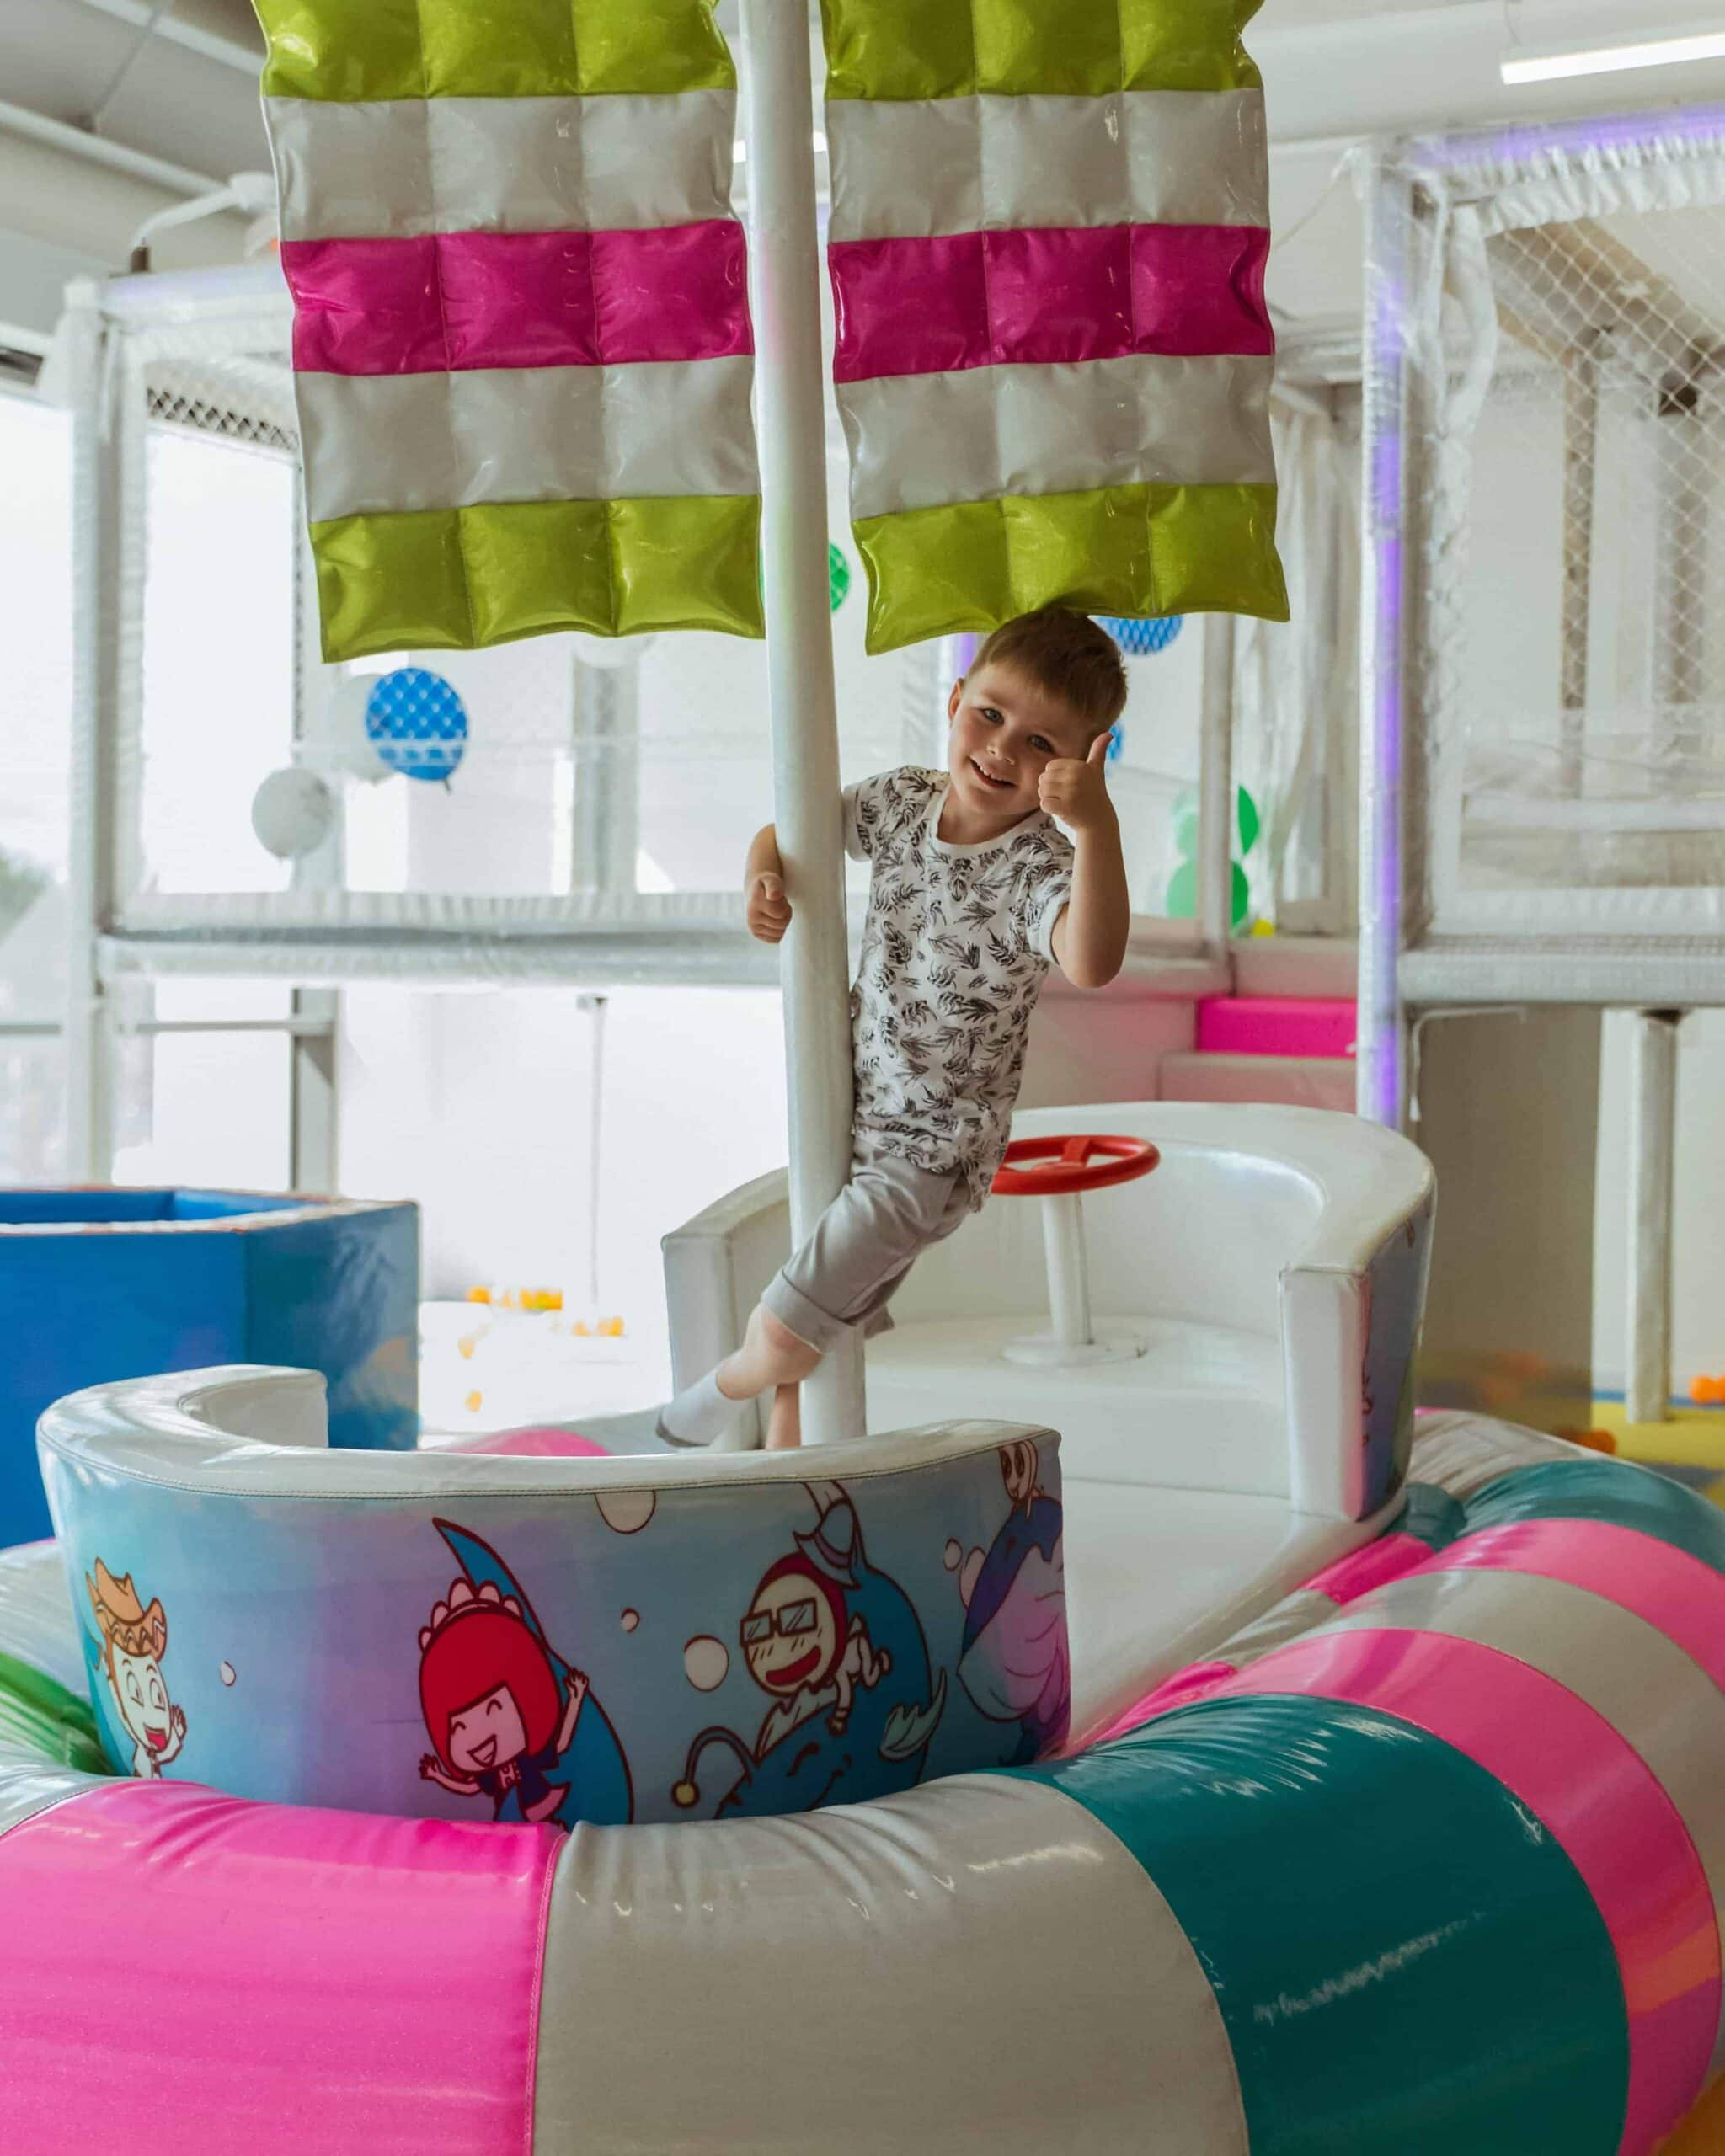 3 ways soft play can improve your children's fine motor skills